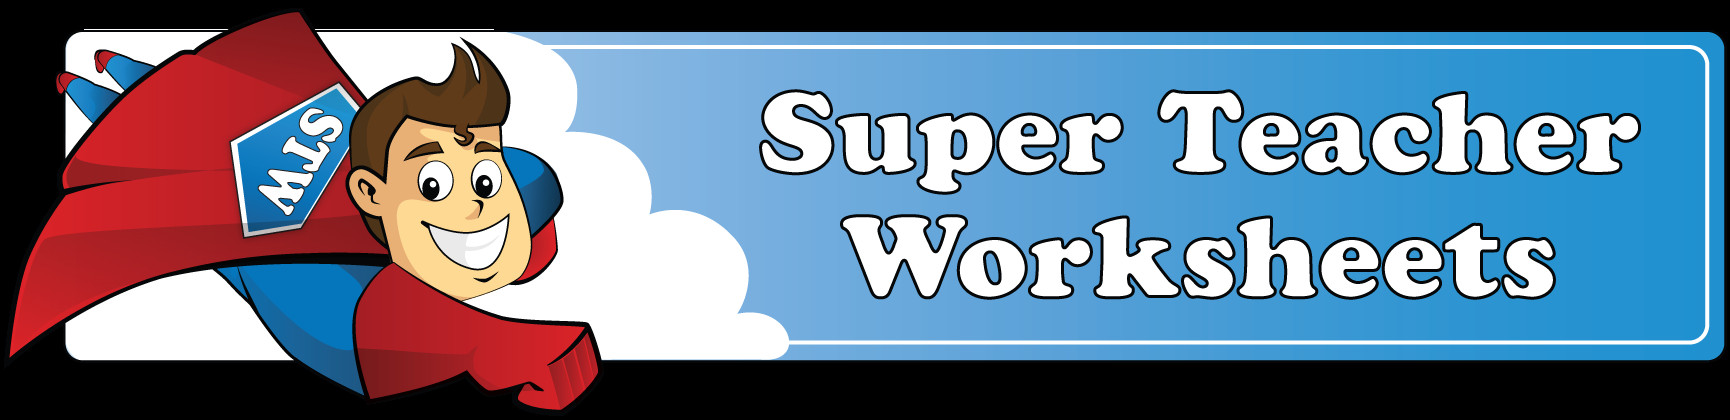 Super Teacher Worksheet